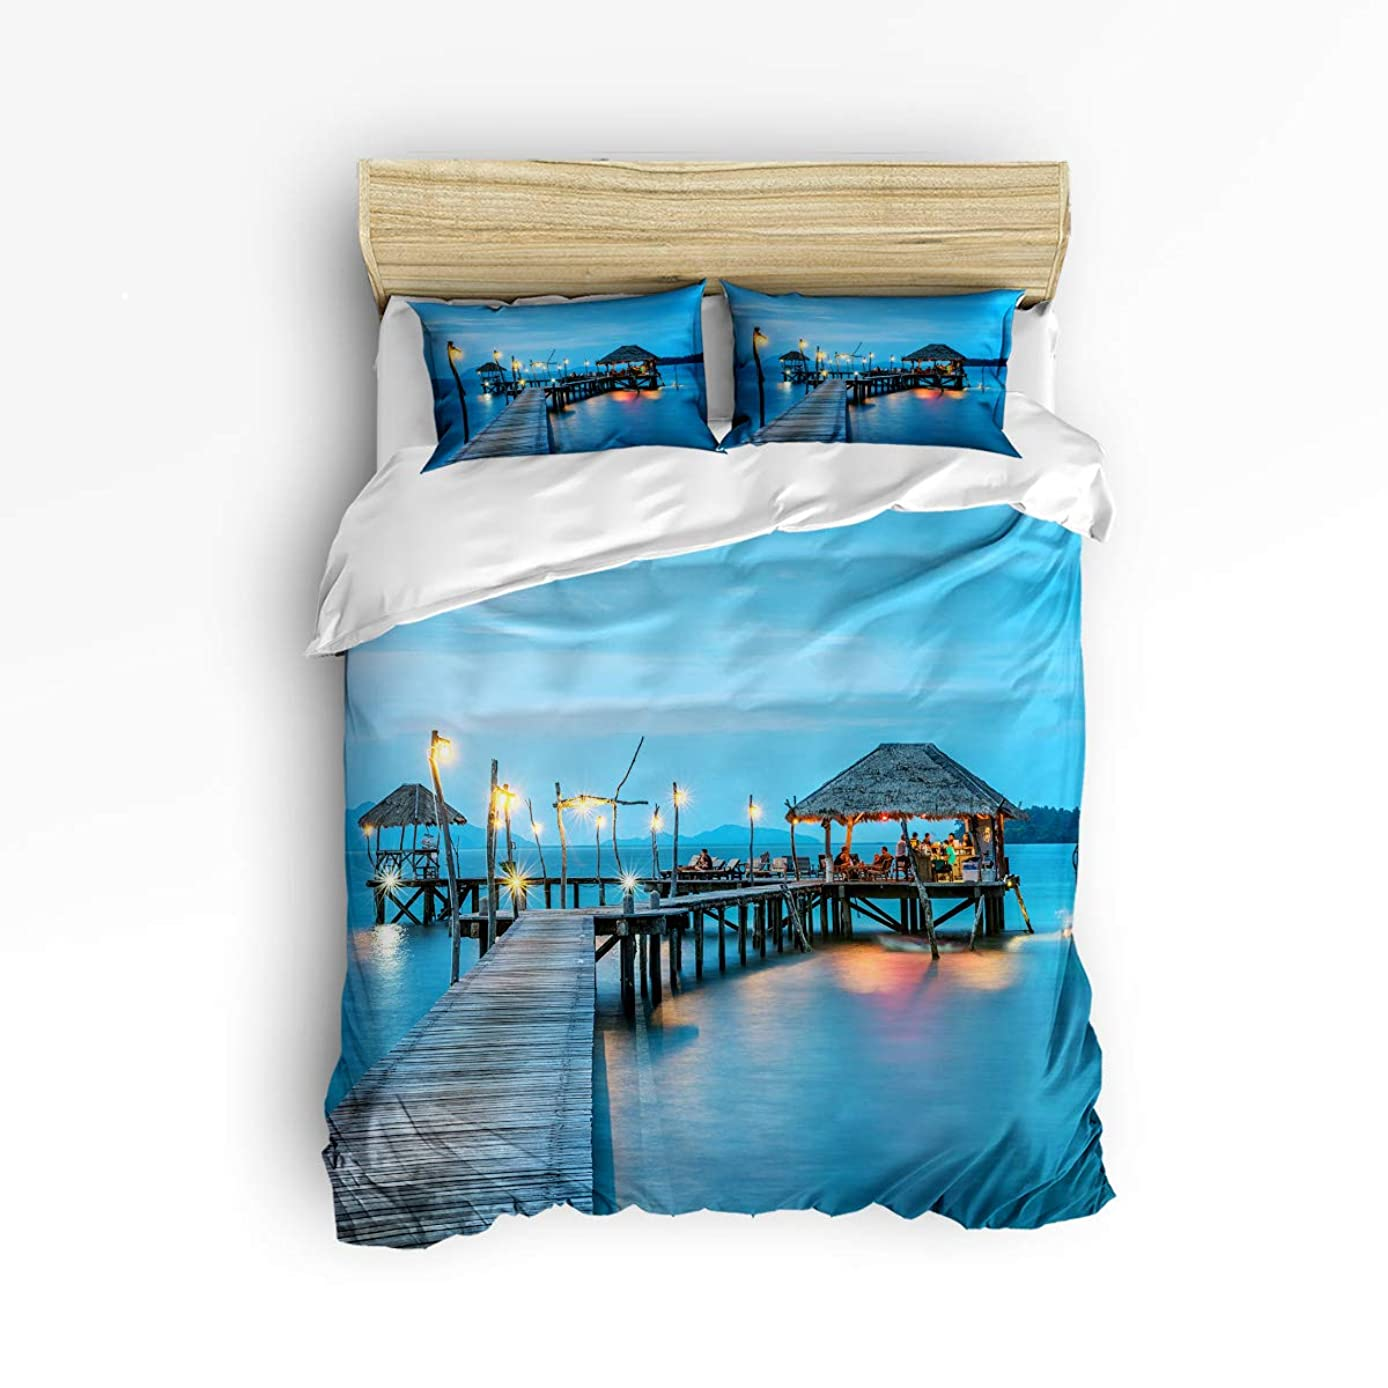 YEHO Art Gallery Queen Size Cute 3 Piece Duvet Cover Sets for Kids Adults Boys Girls,Beautiful Scenery of Holiday Village,Bedroom Decorative Bedding Set Include 1 Duvet Cover with 2 Pillow Cases